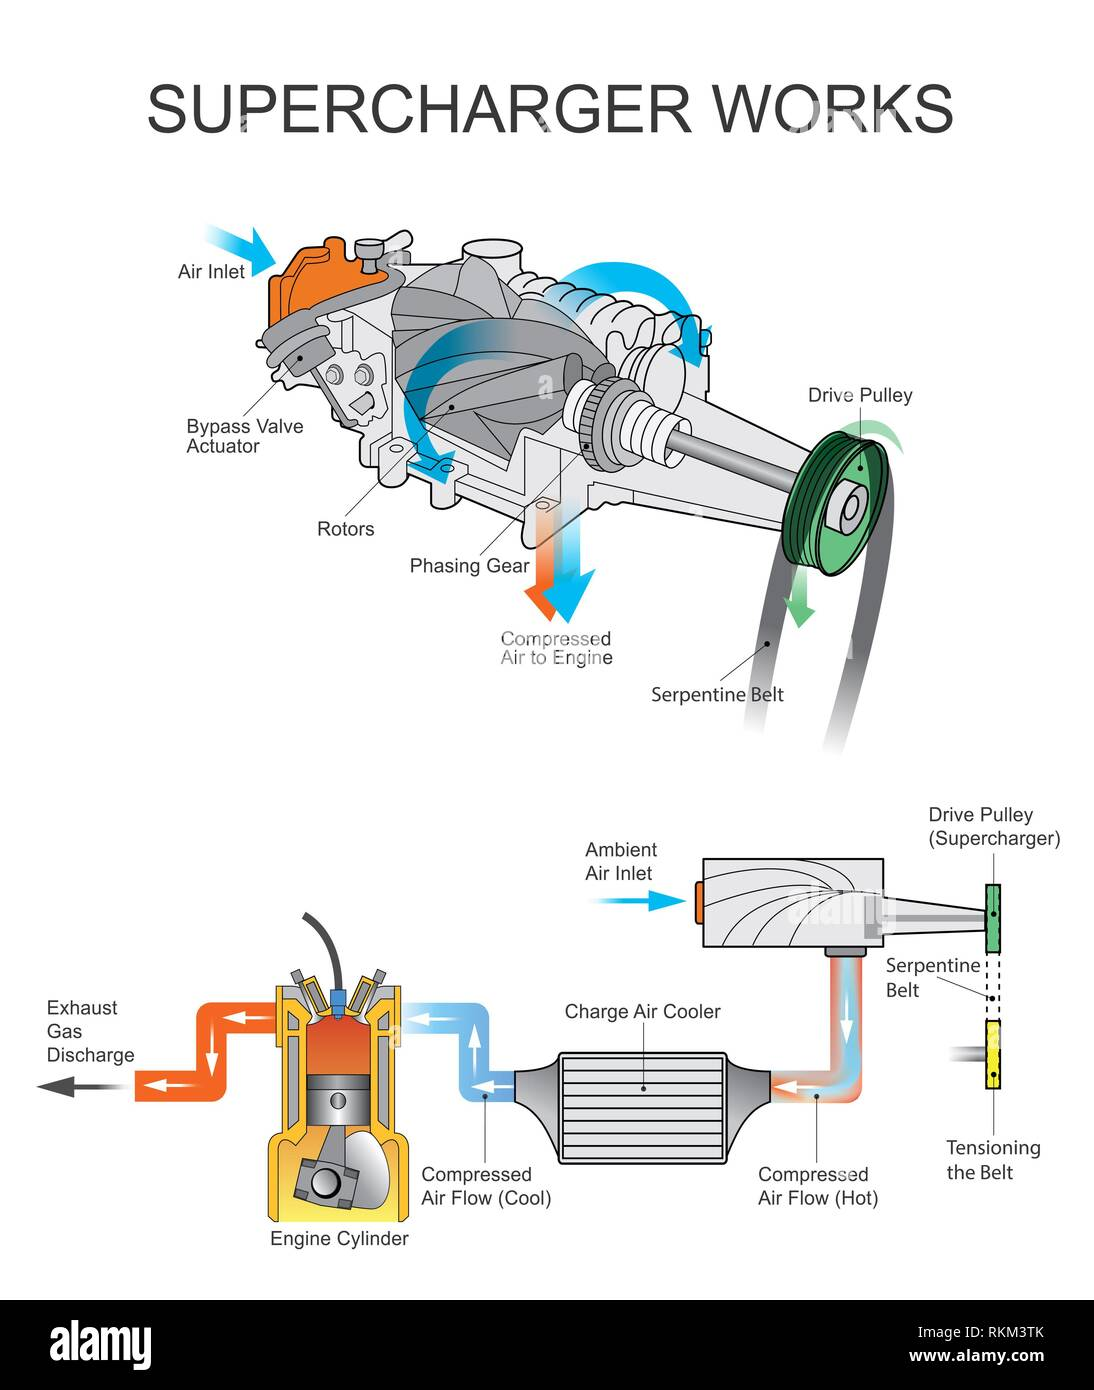 reputable site 9b15e 62e12 Supercharger is an air compressor that increases the pressure or density of  air supplied to an internal combustion engine.